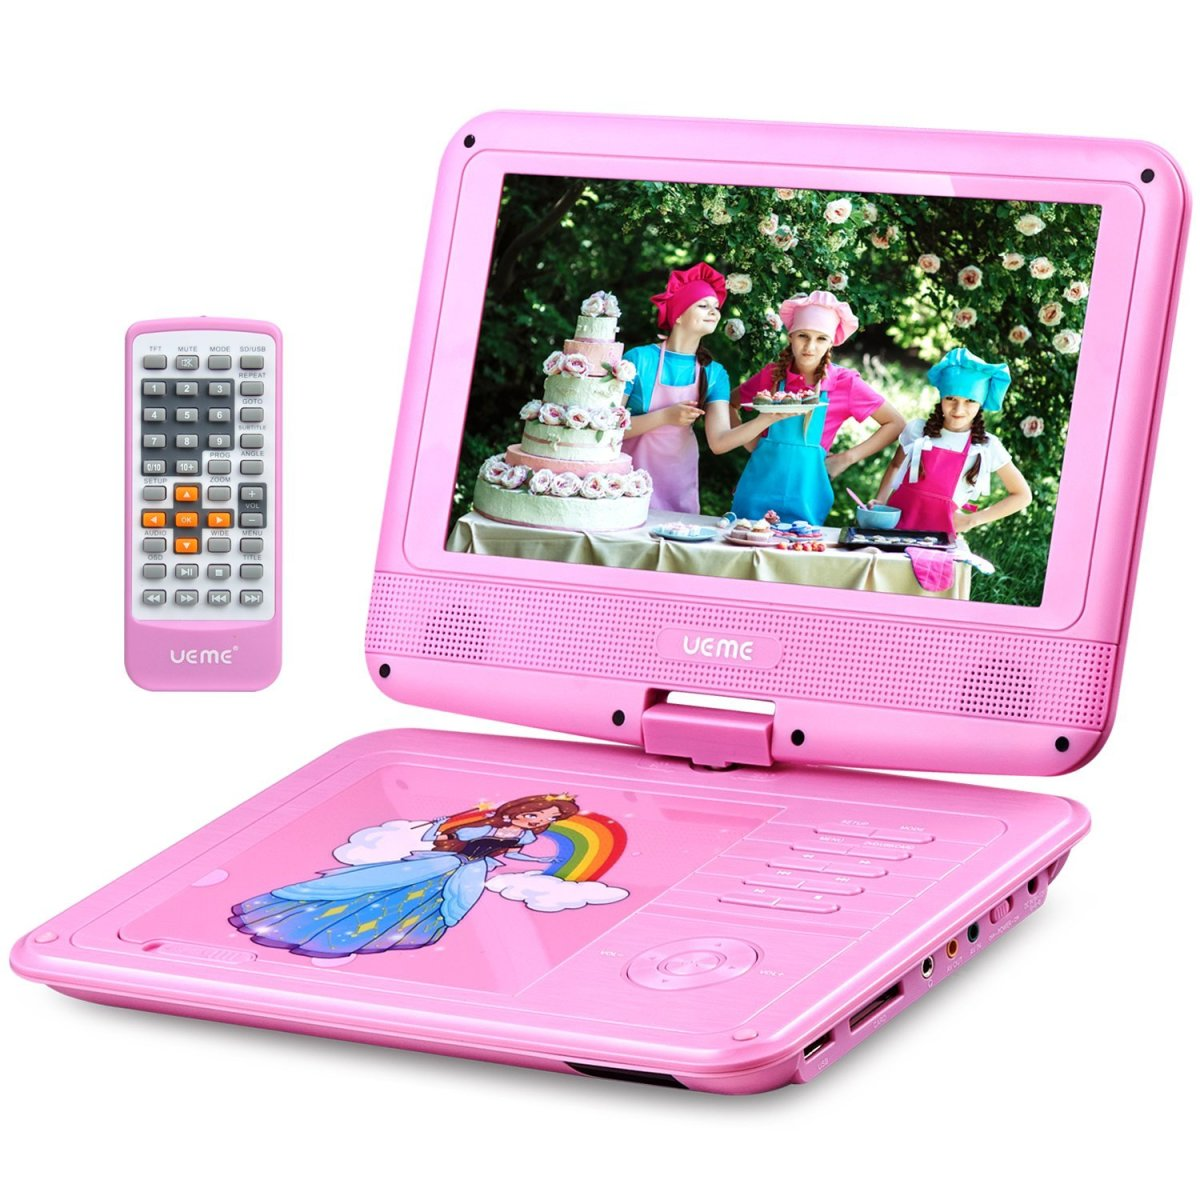 The Best 3 Portable DVD Players for Kids in 2018